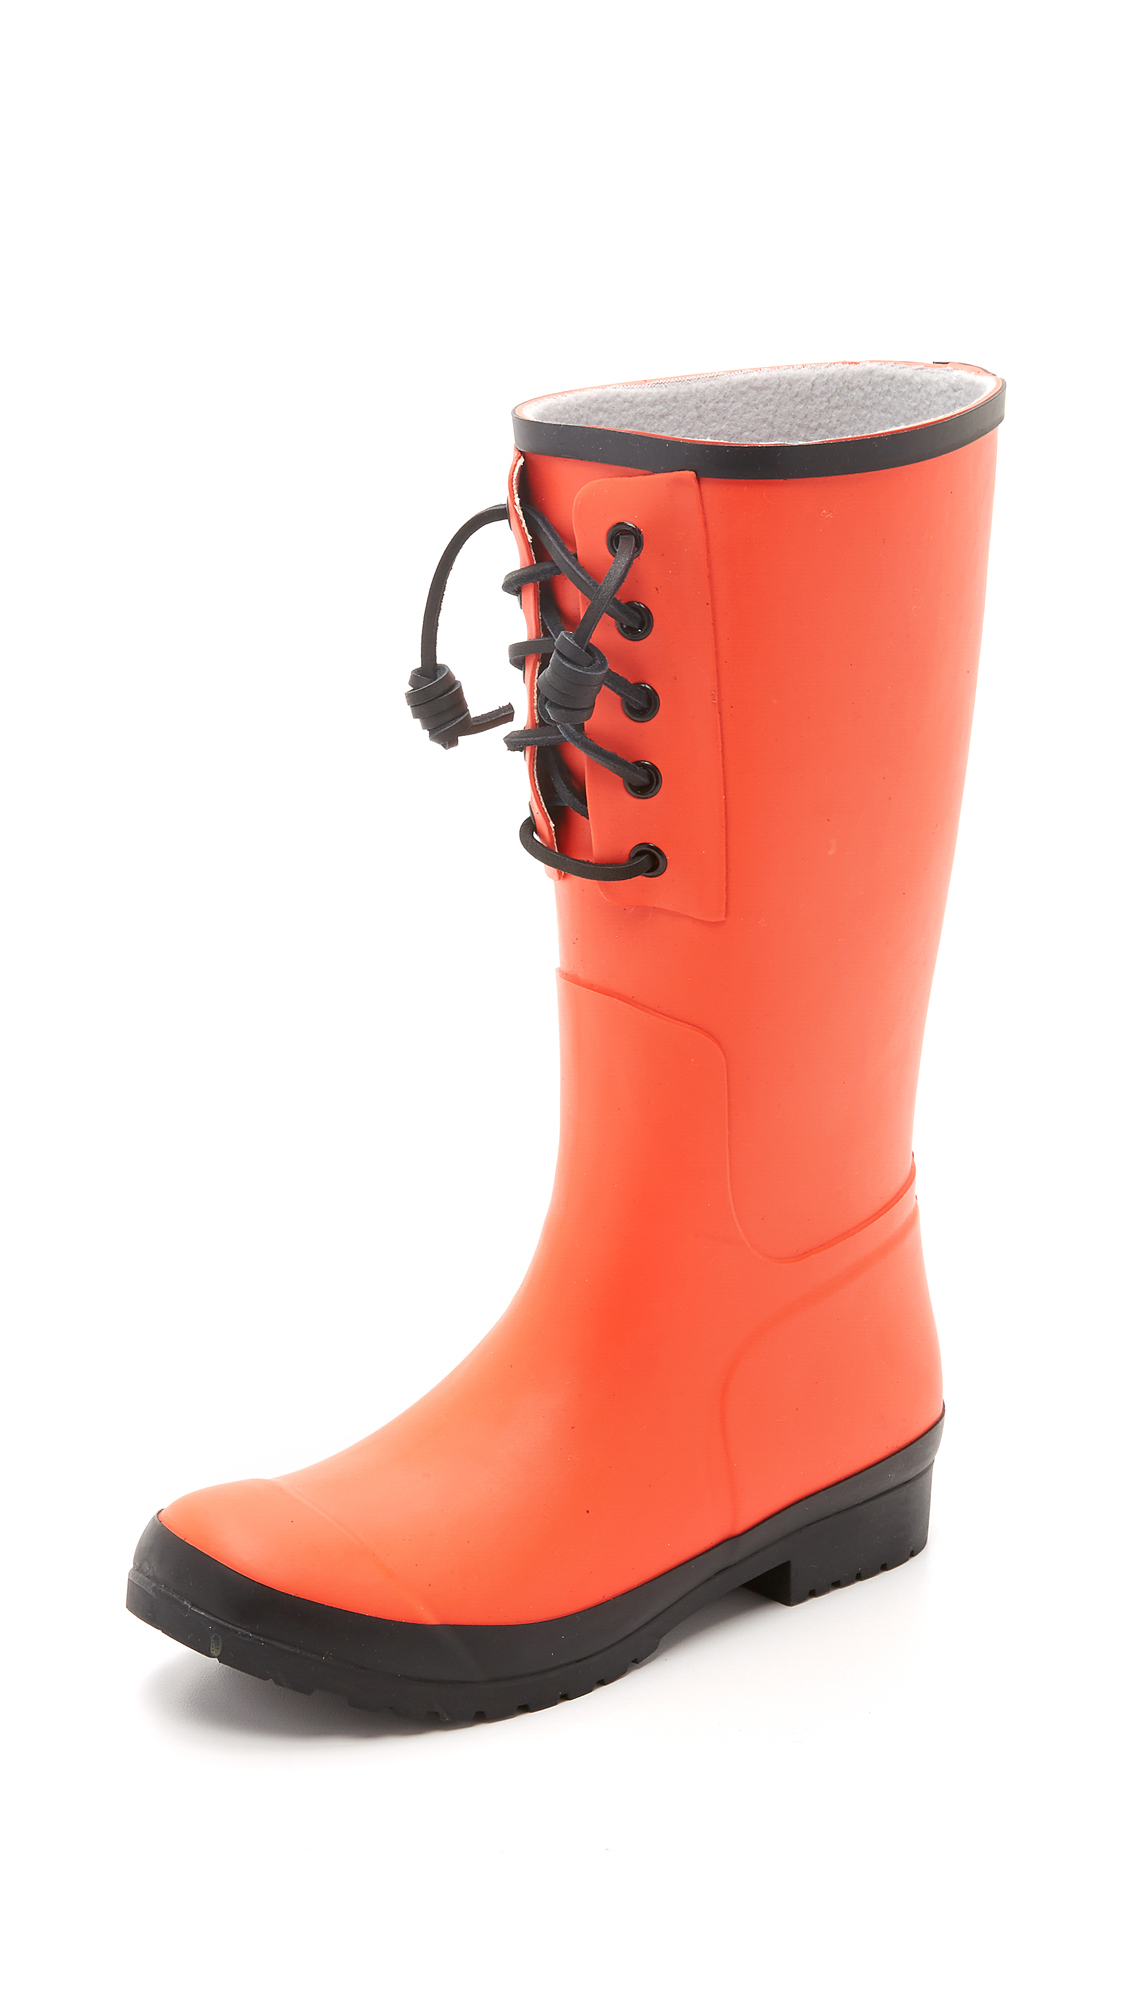 Sperry top-sider Walker Spray Rain Boots in Orange | Lyst